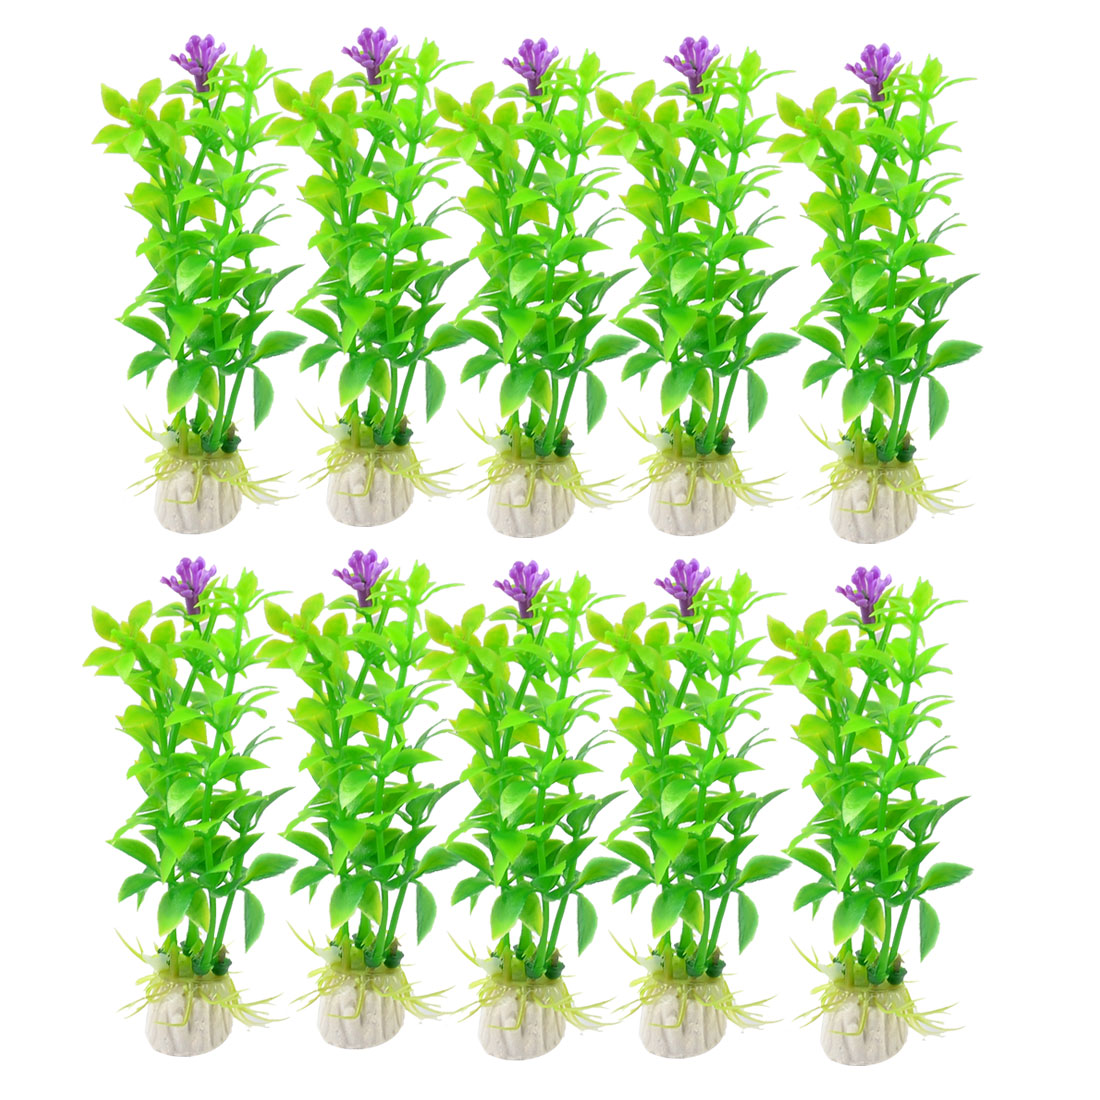 "10 Pcs Fish Tank Aquariums Green Light Purple Aquatic Floral Grass Ornament 3.5"" High"